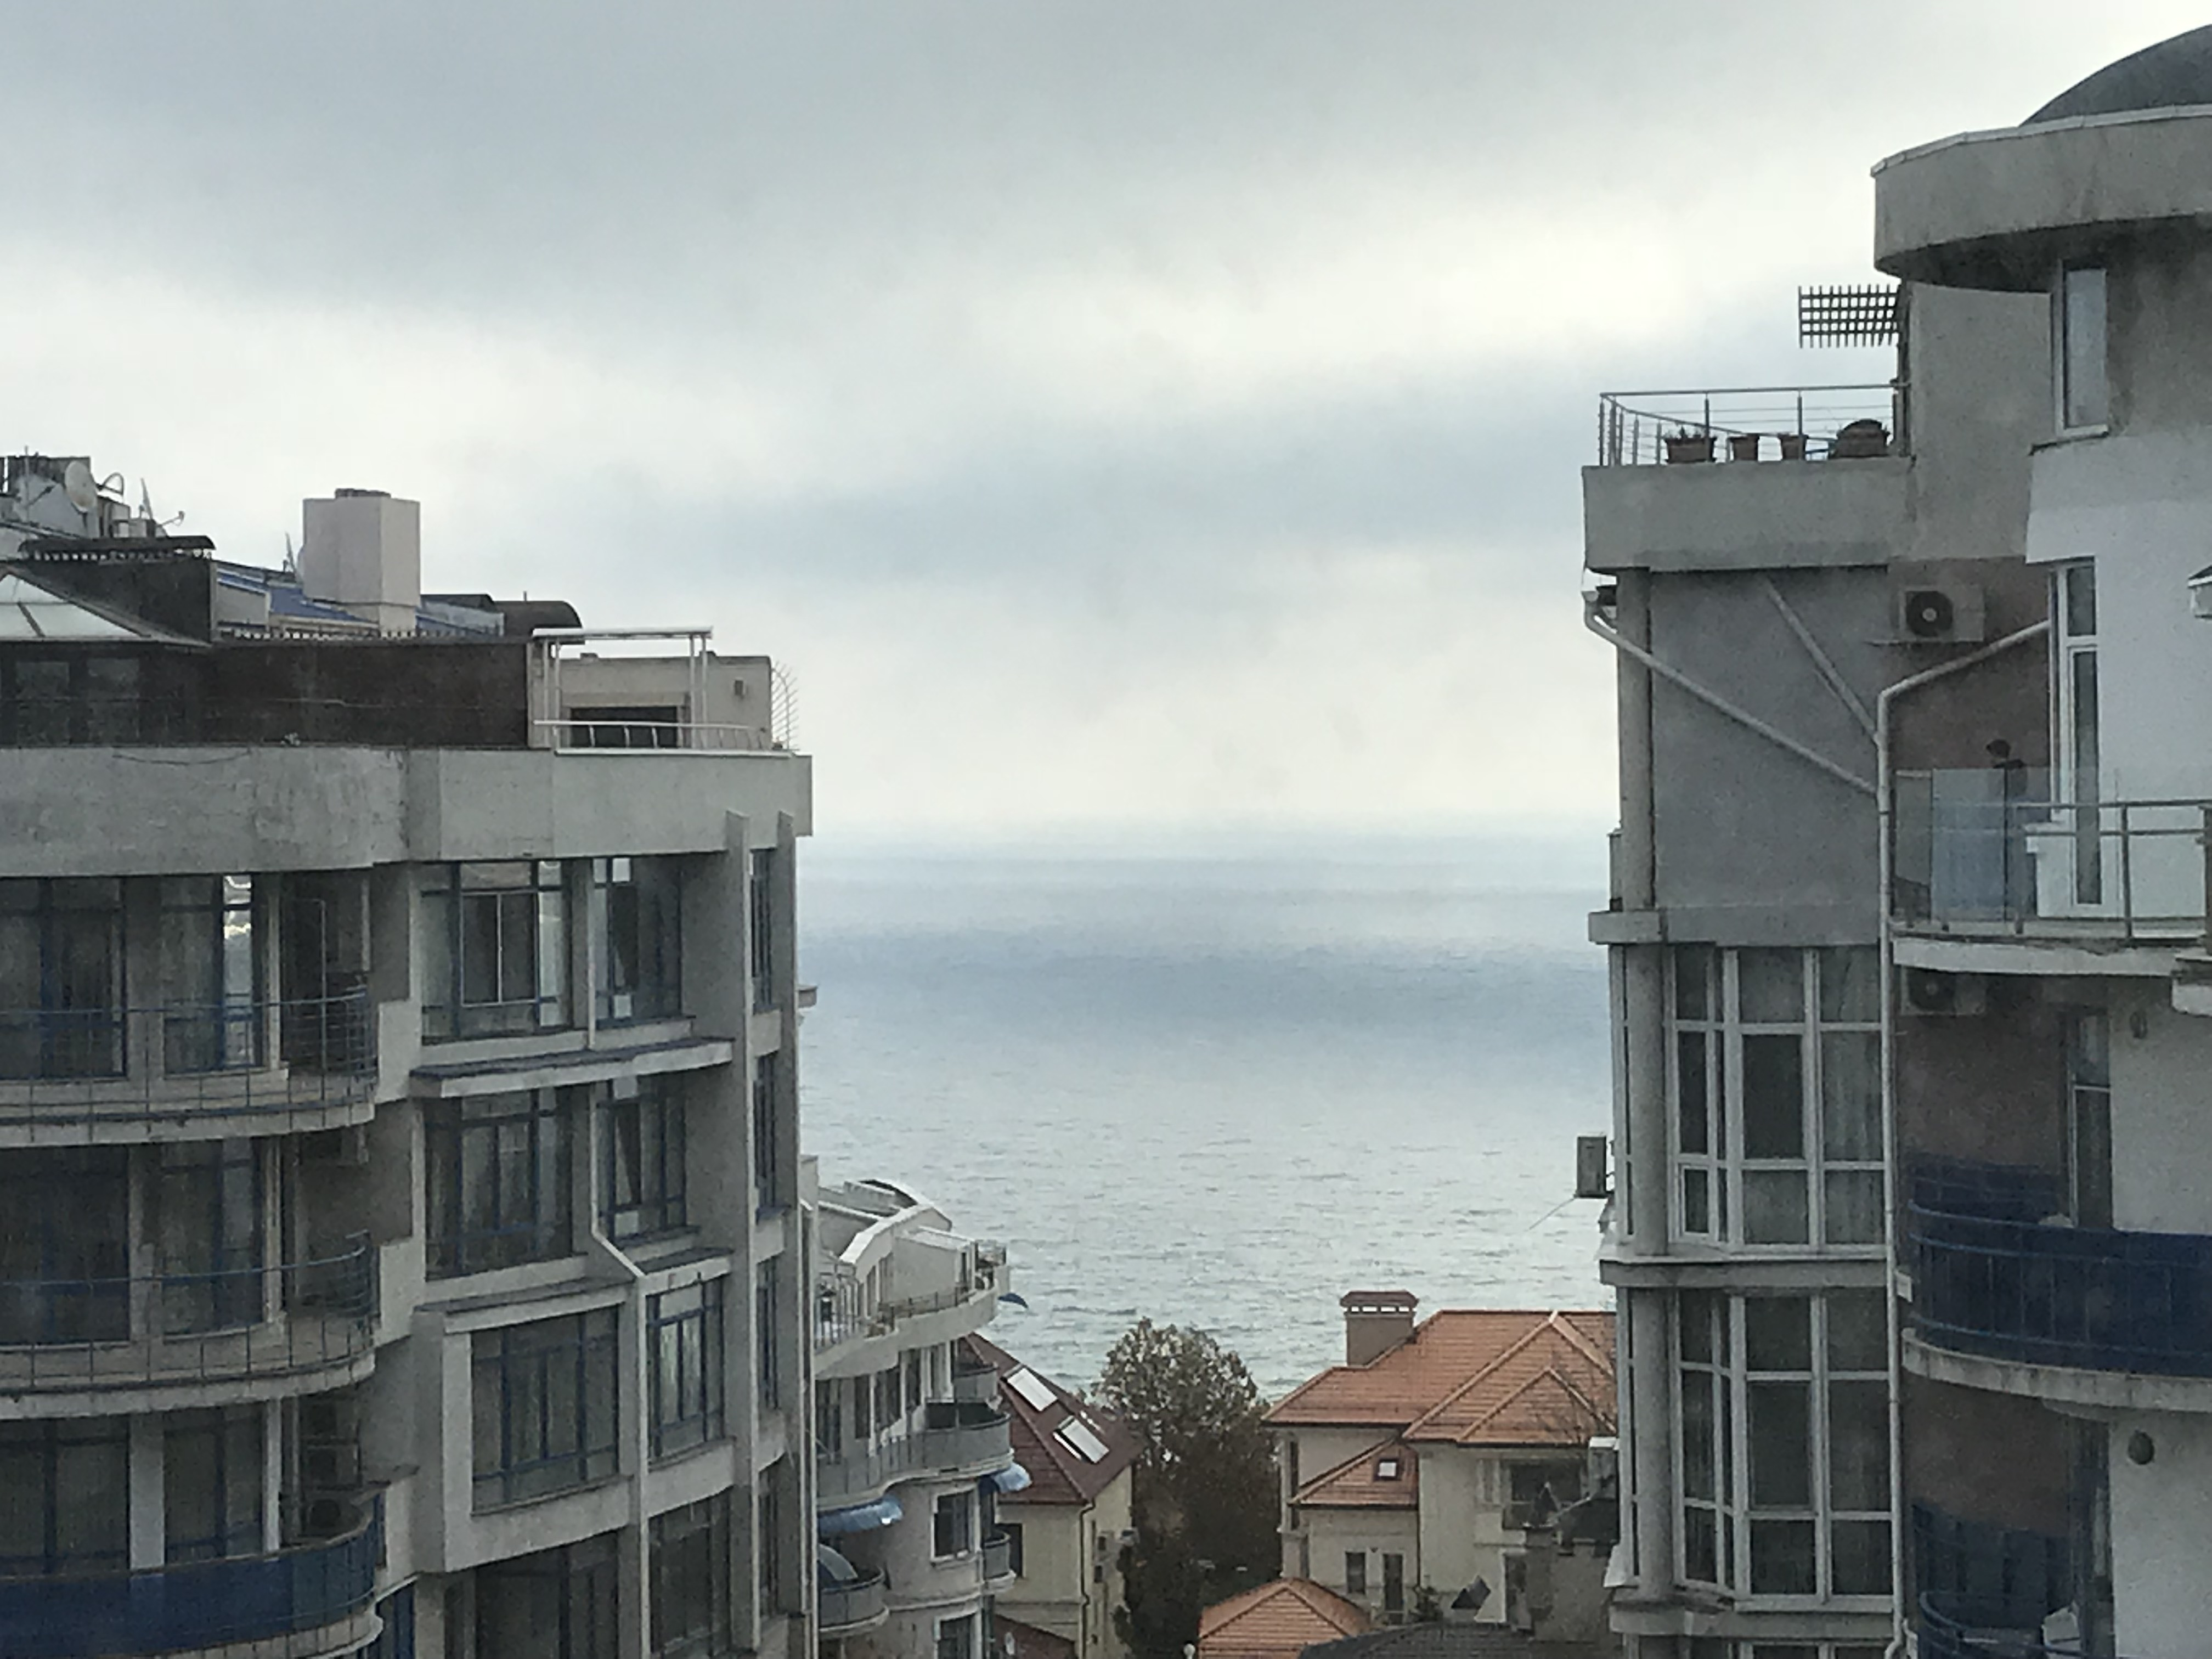 3-room apartment, Mukachevskyi lane. Sea view.